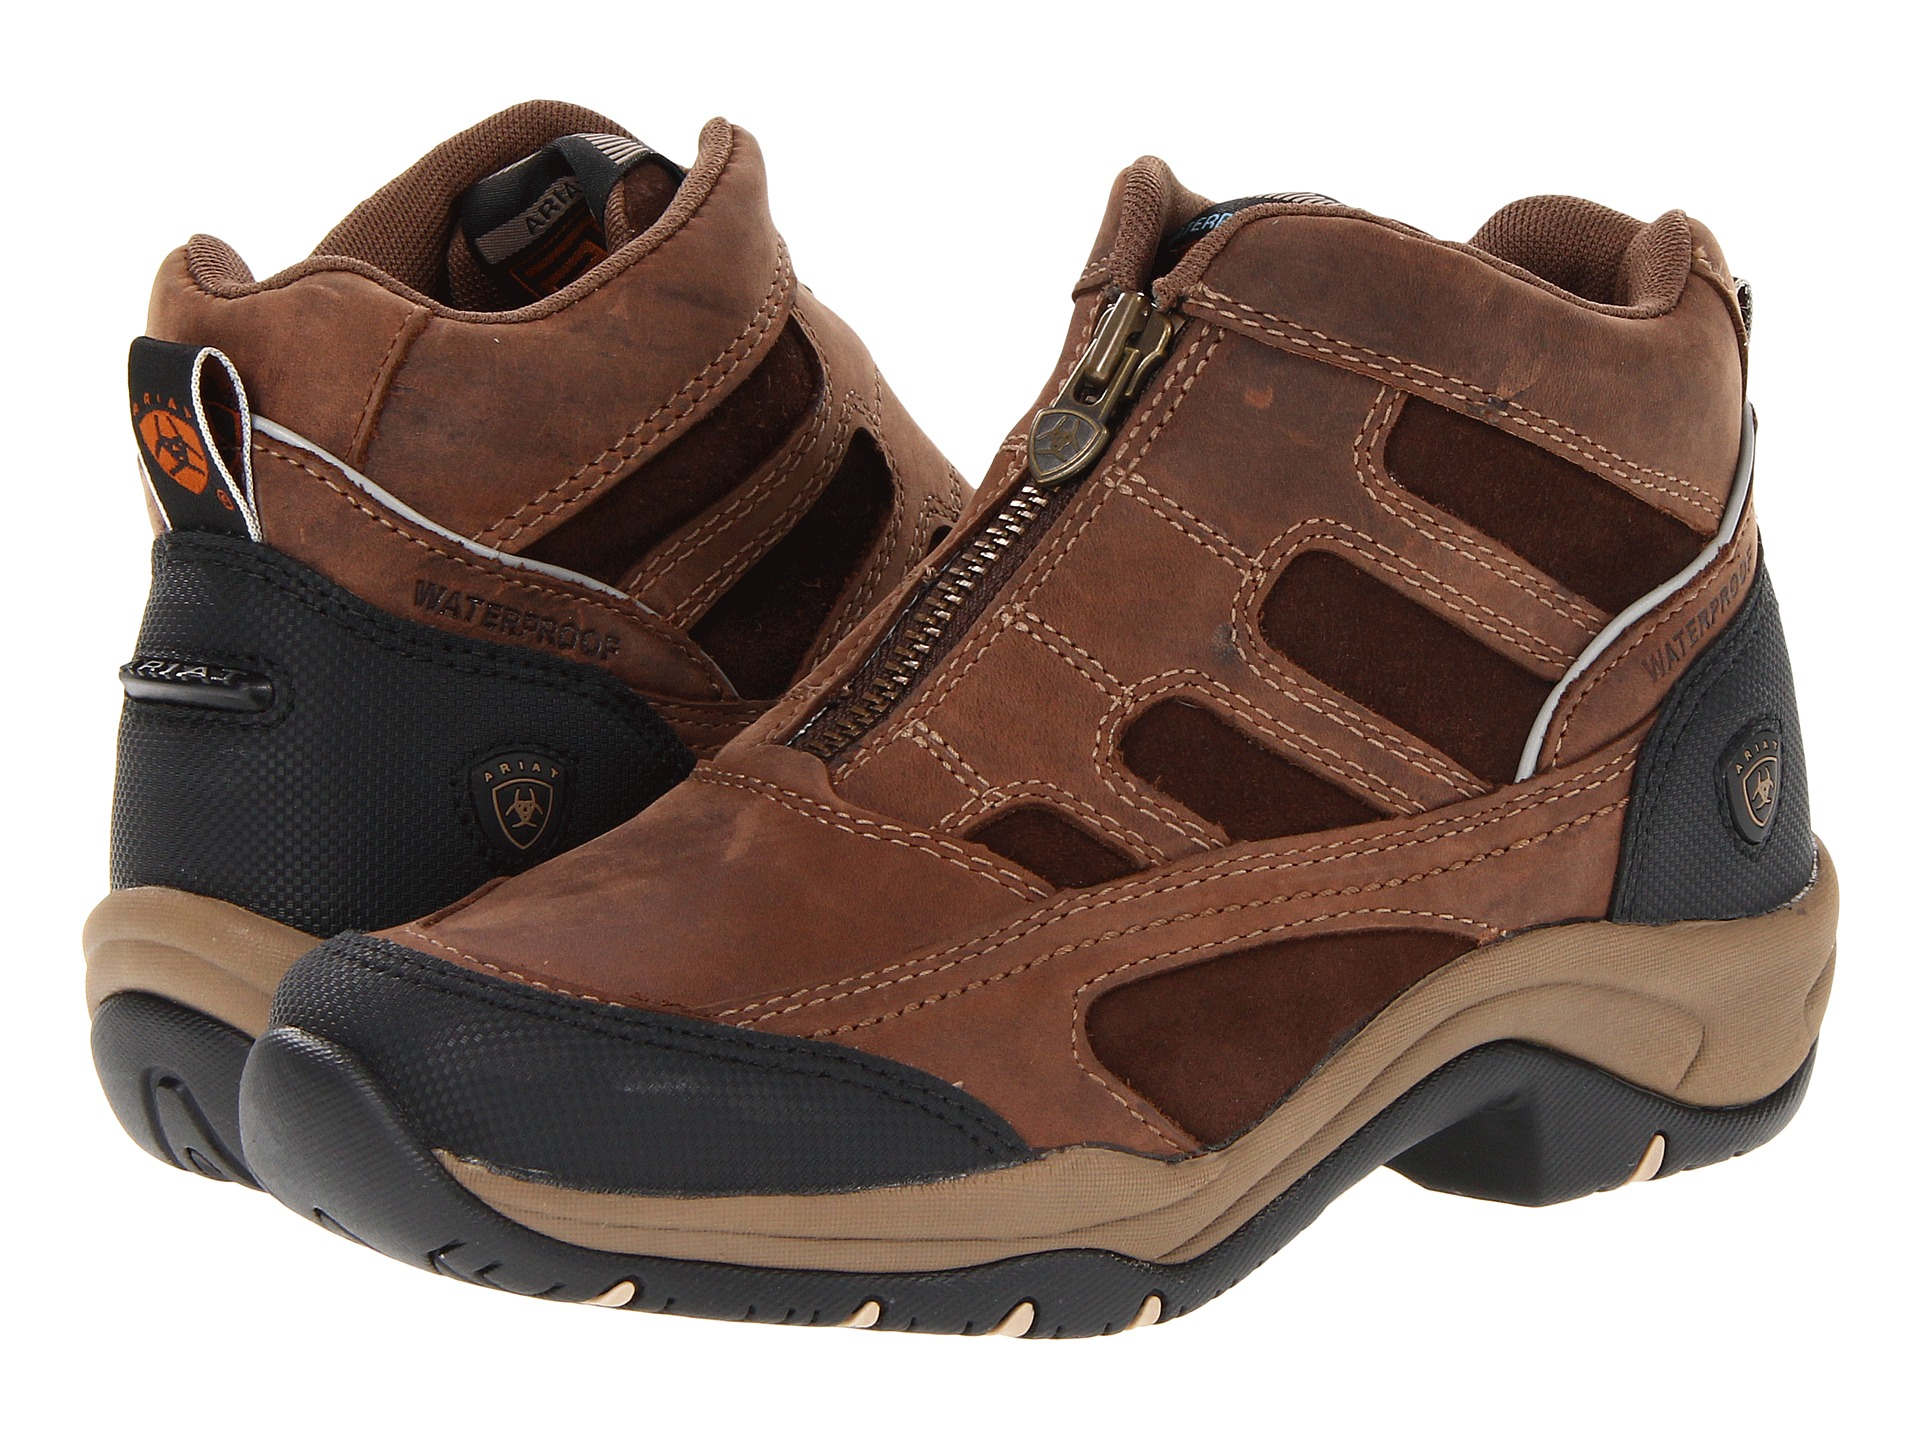 Ariat Terrain Zip H20 - Zappos.com Free Shipping BOTH Ways